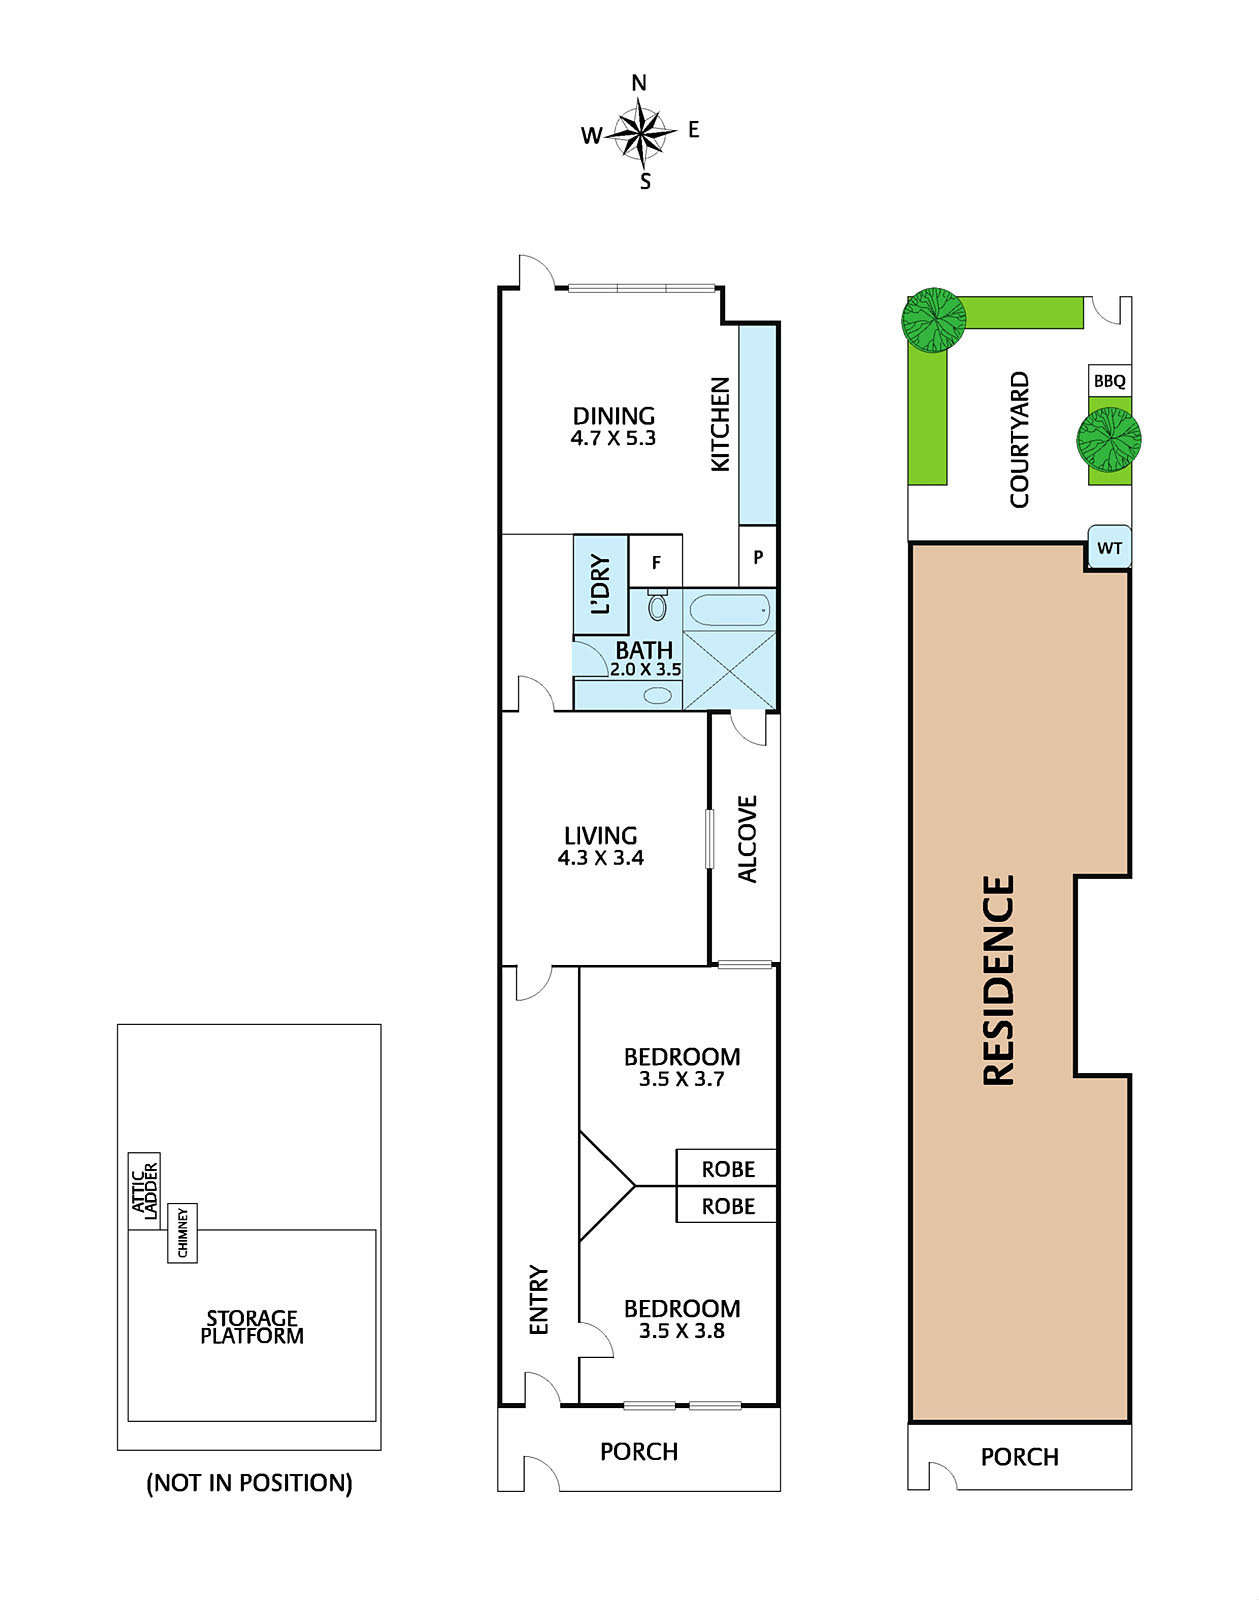 The floor plan shows the new kitchen-dining setup and artfully relocated laundry and full bath (which had formerly occupied the back). &#8